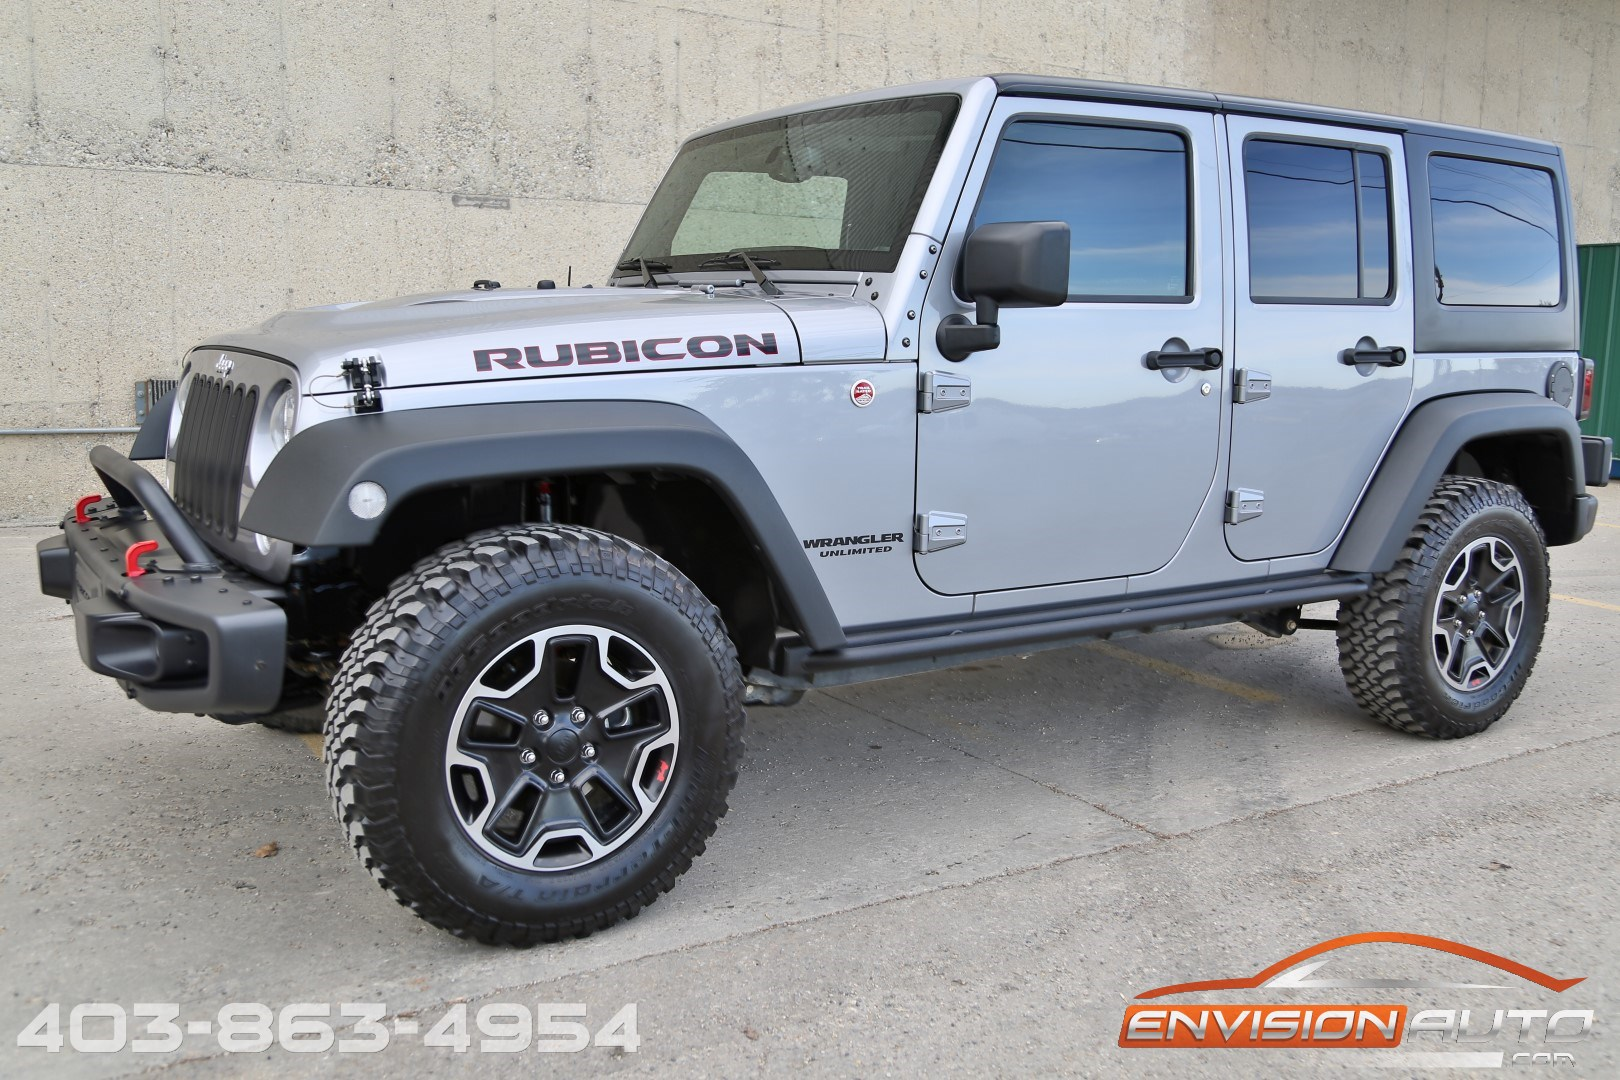 2015 jeep wrangler unlimited rubicon 4 4 hard rock edition envision auto. Black Bedroom Furniture Sets. Home Design Ideas